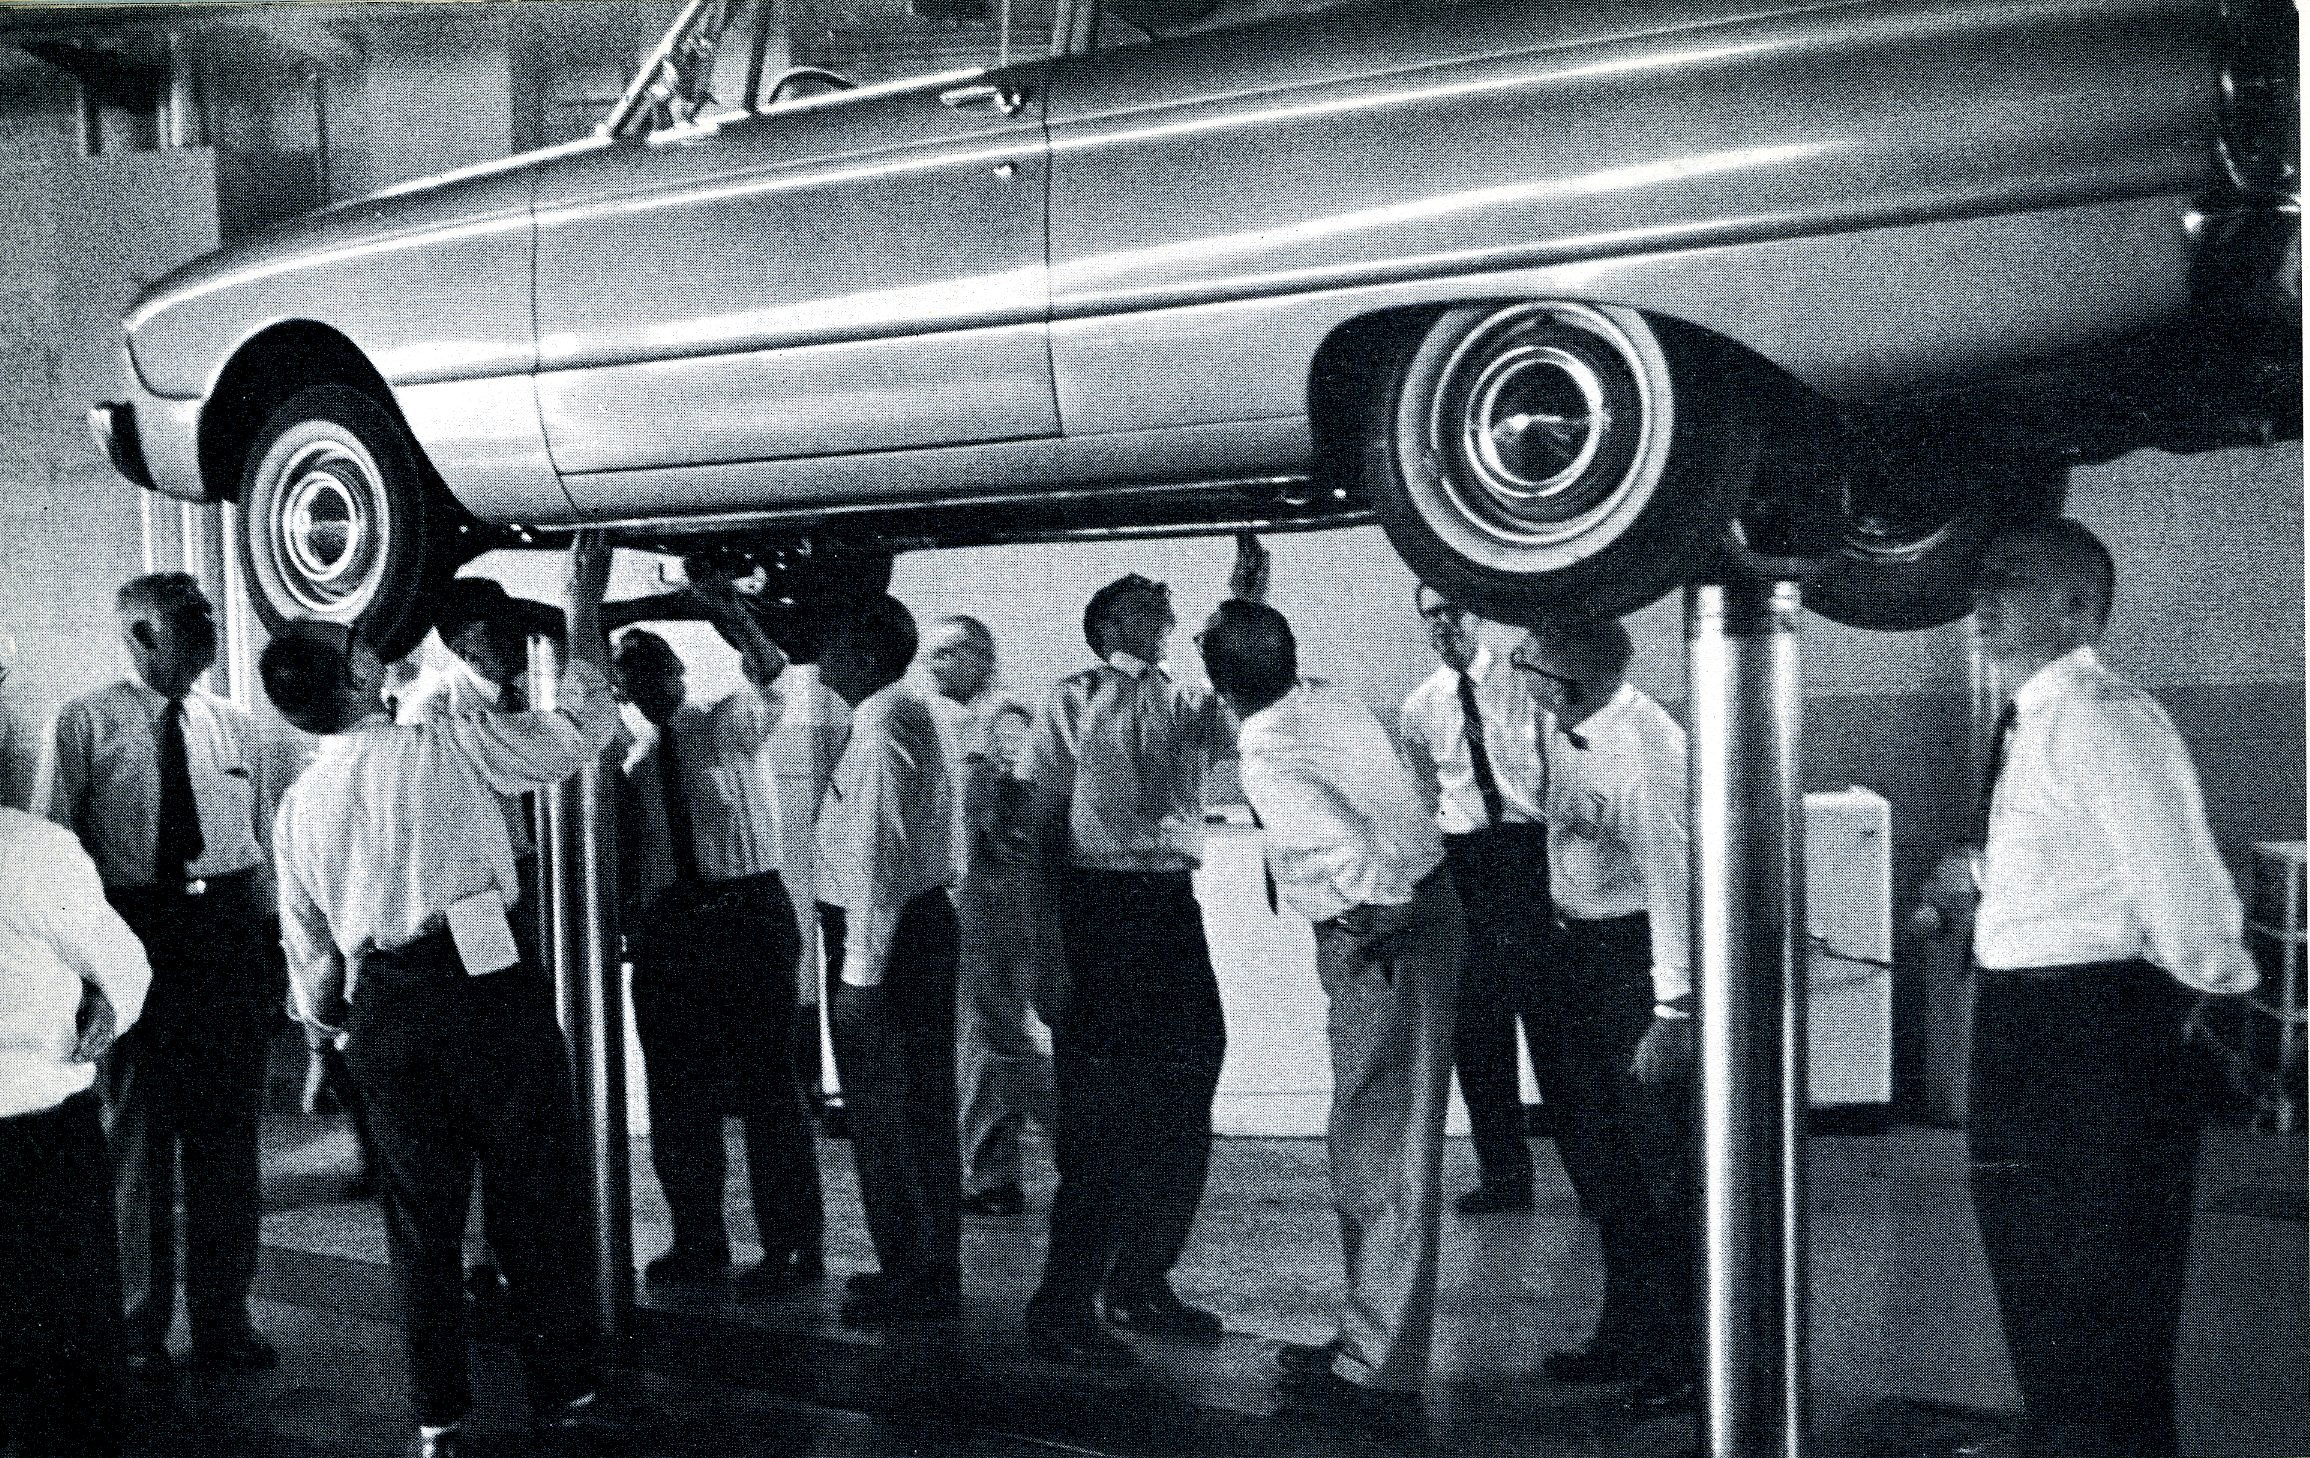 Ford motor company report 1959 monsters madonnas for Ford motor company annual report